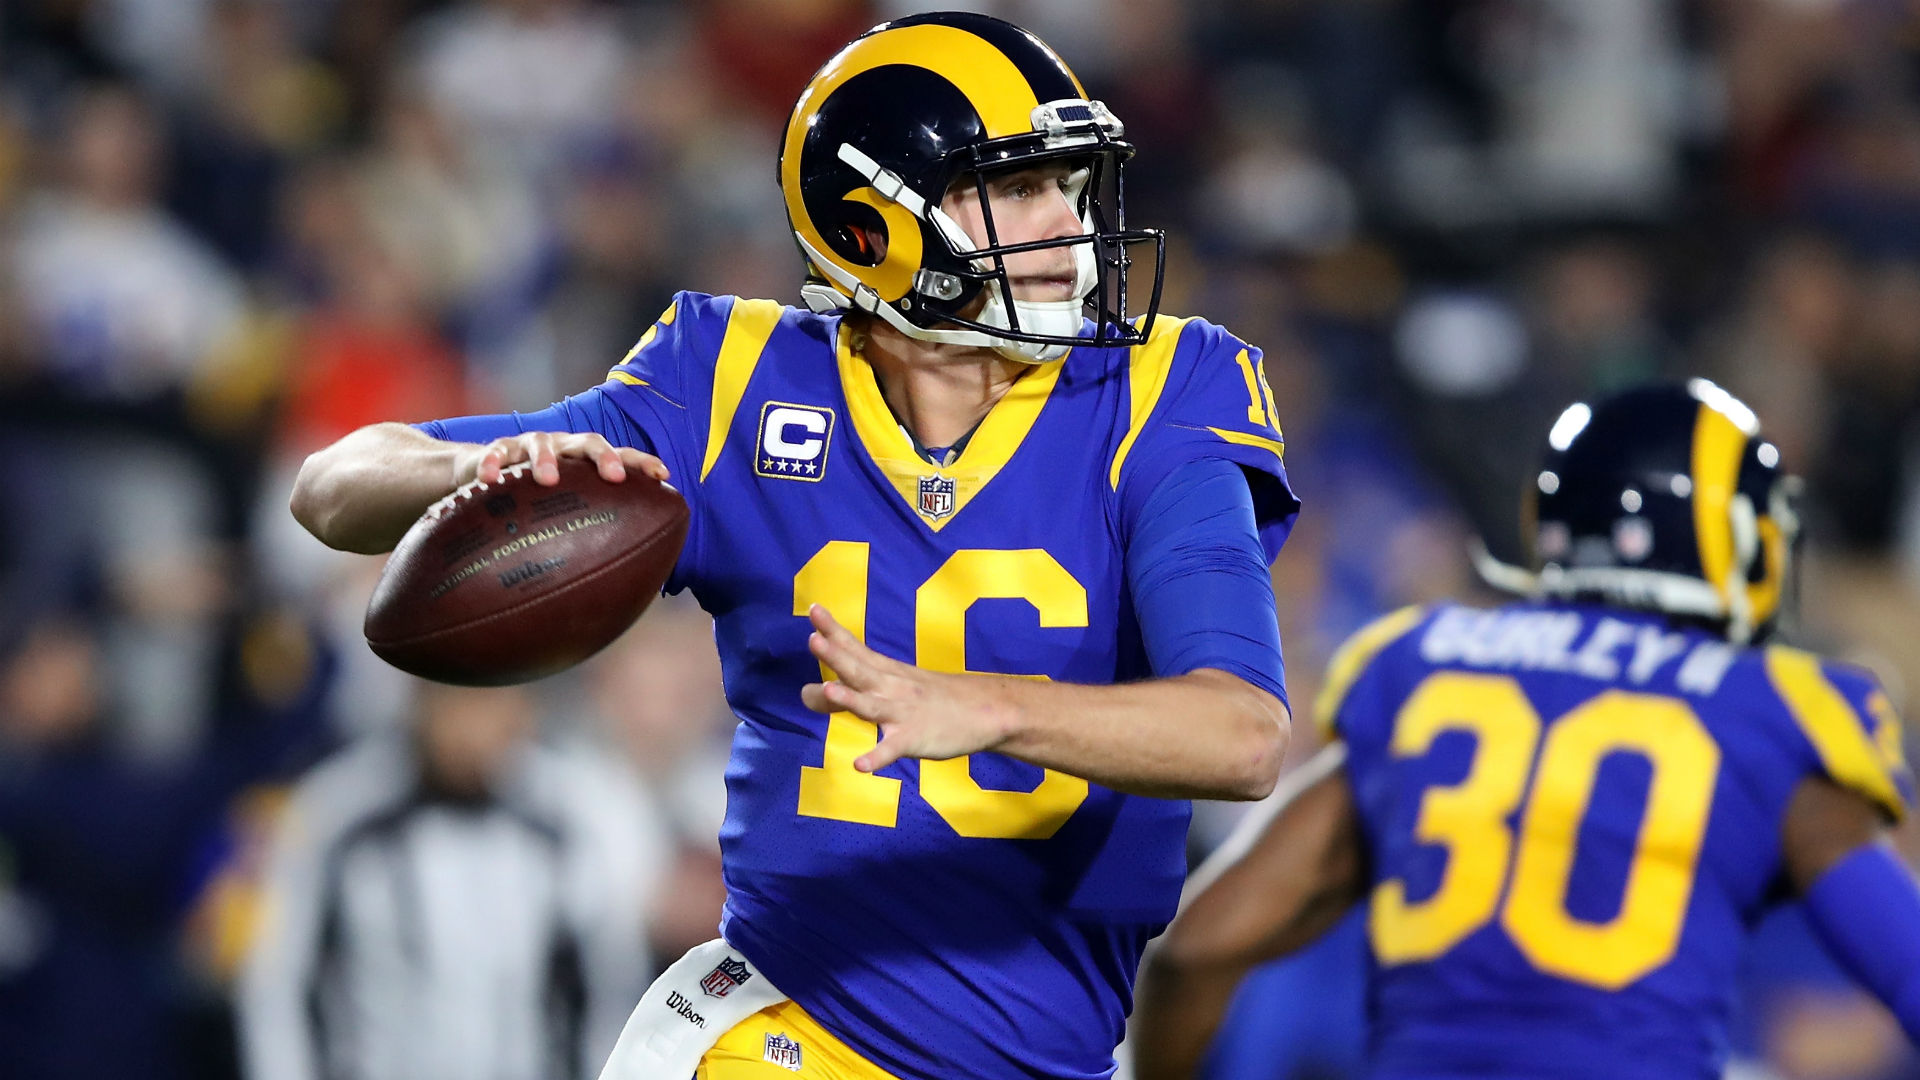 After running over Cowboys, Rams need Jared Goff to pass them to NFC title